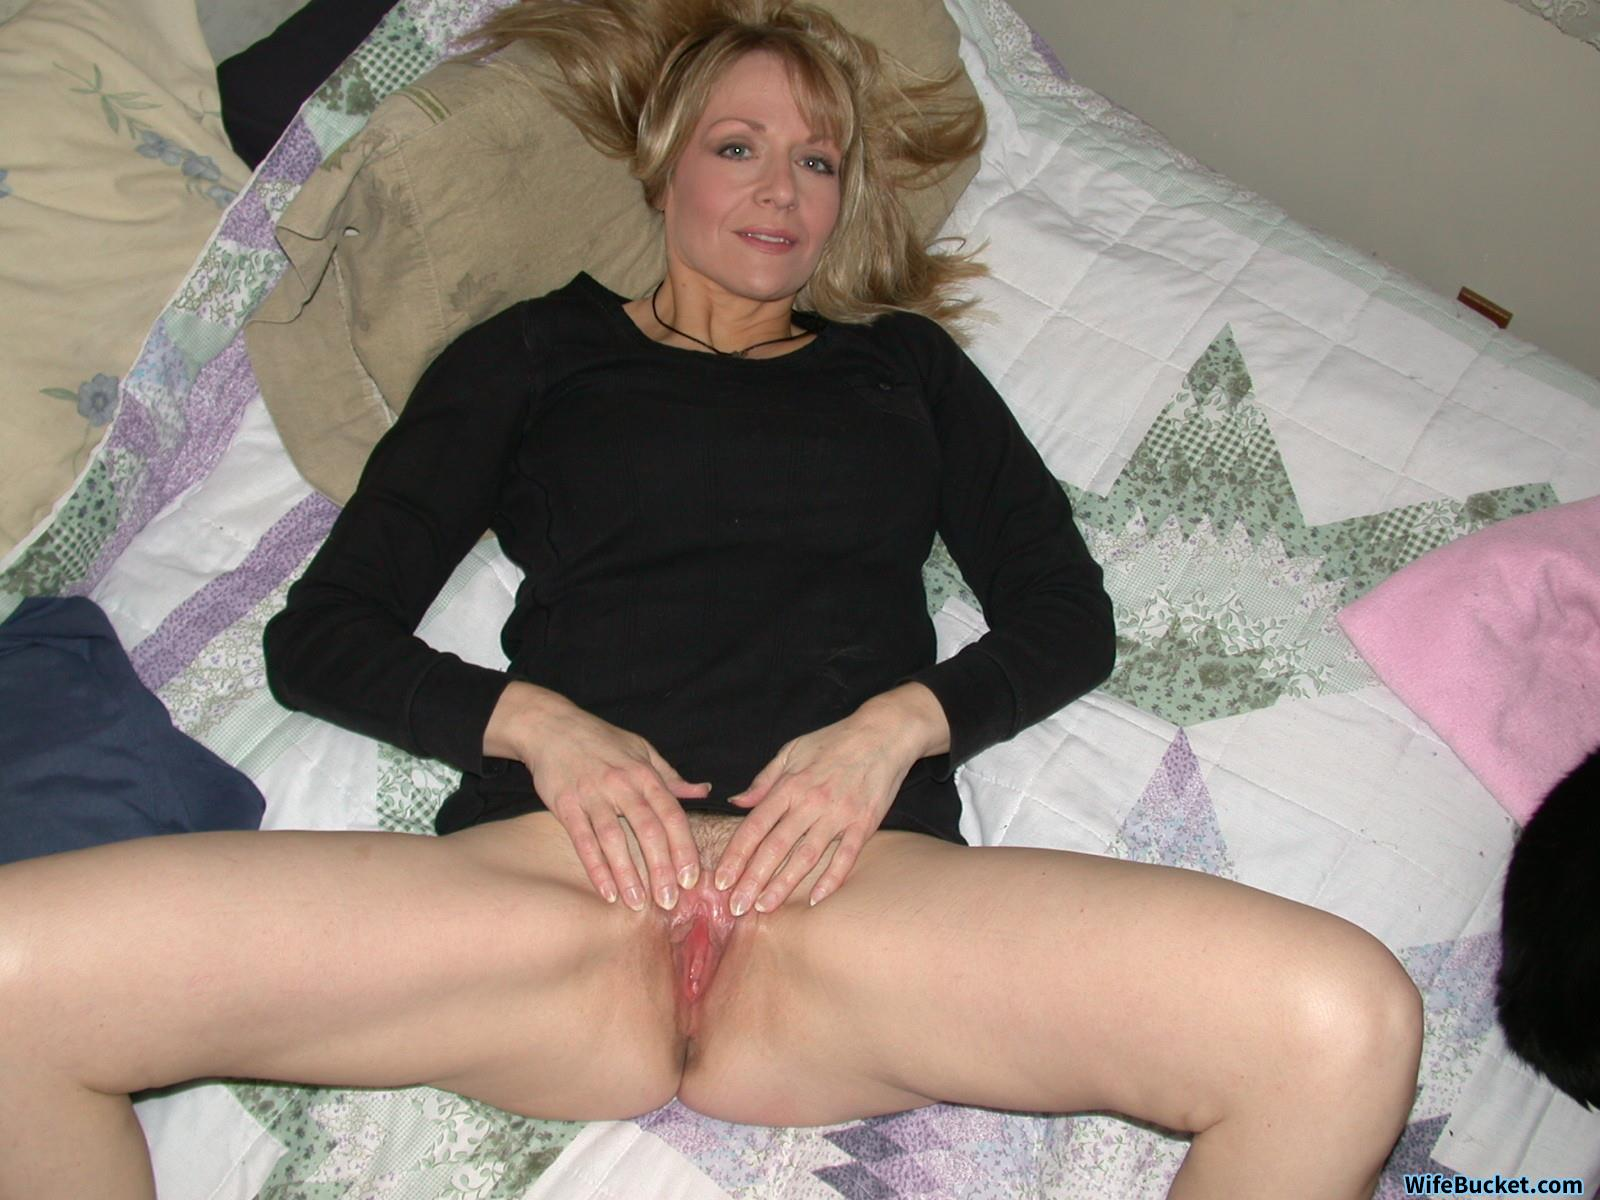 Mature latina nude videos